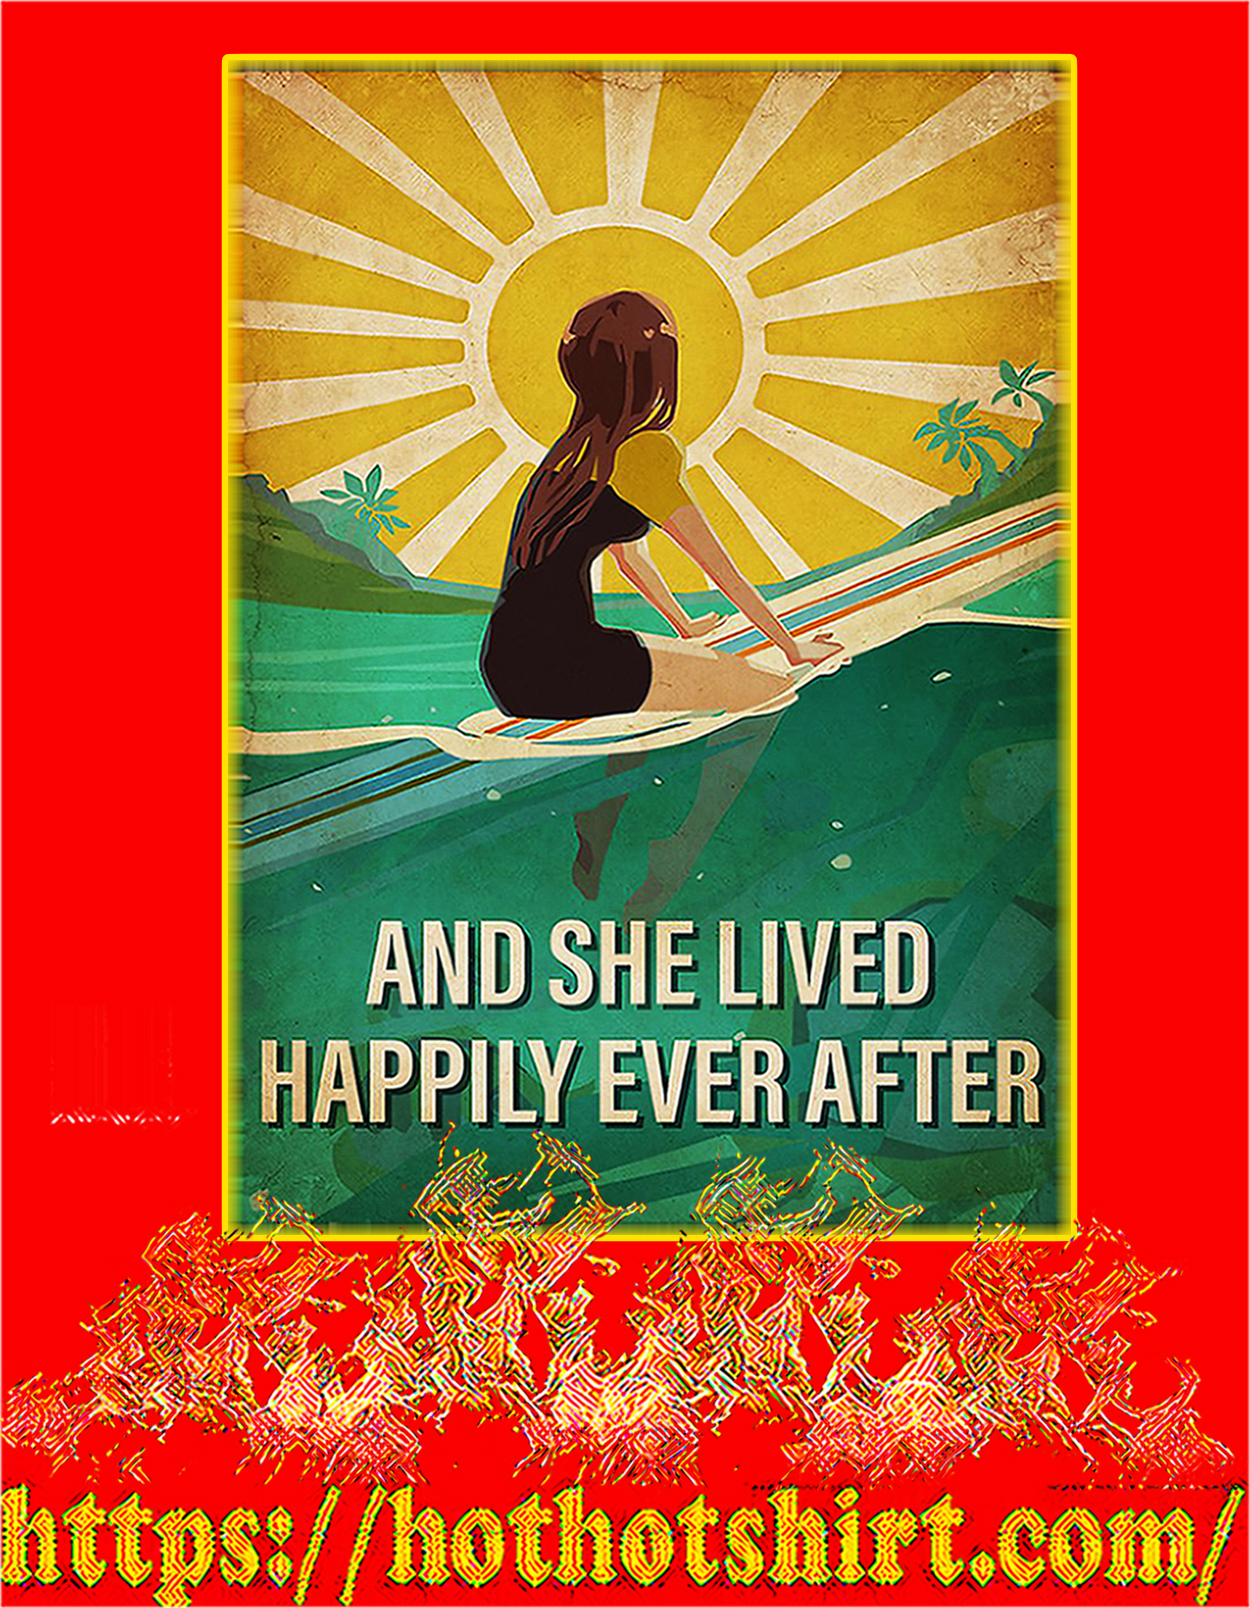 Surfing And she lived happily ever after poster - A3